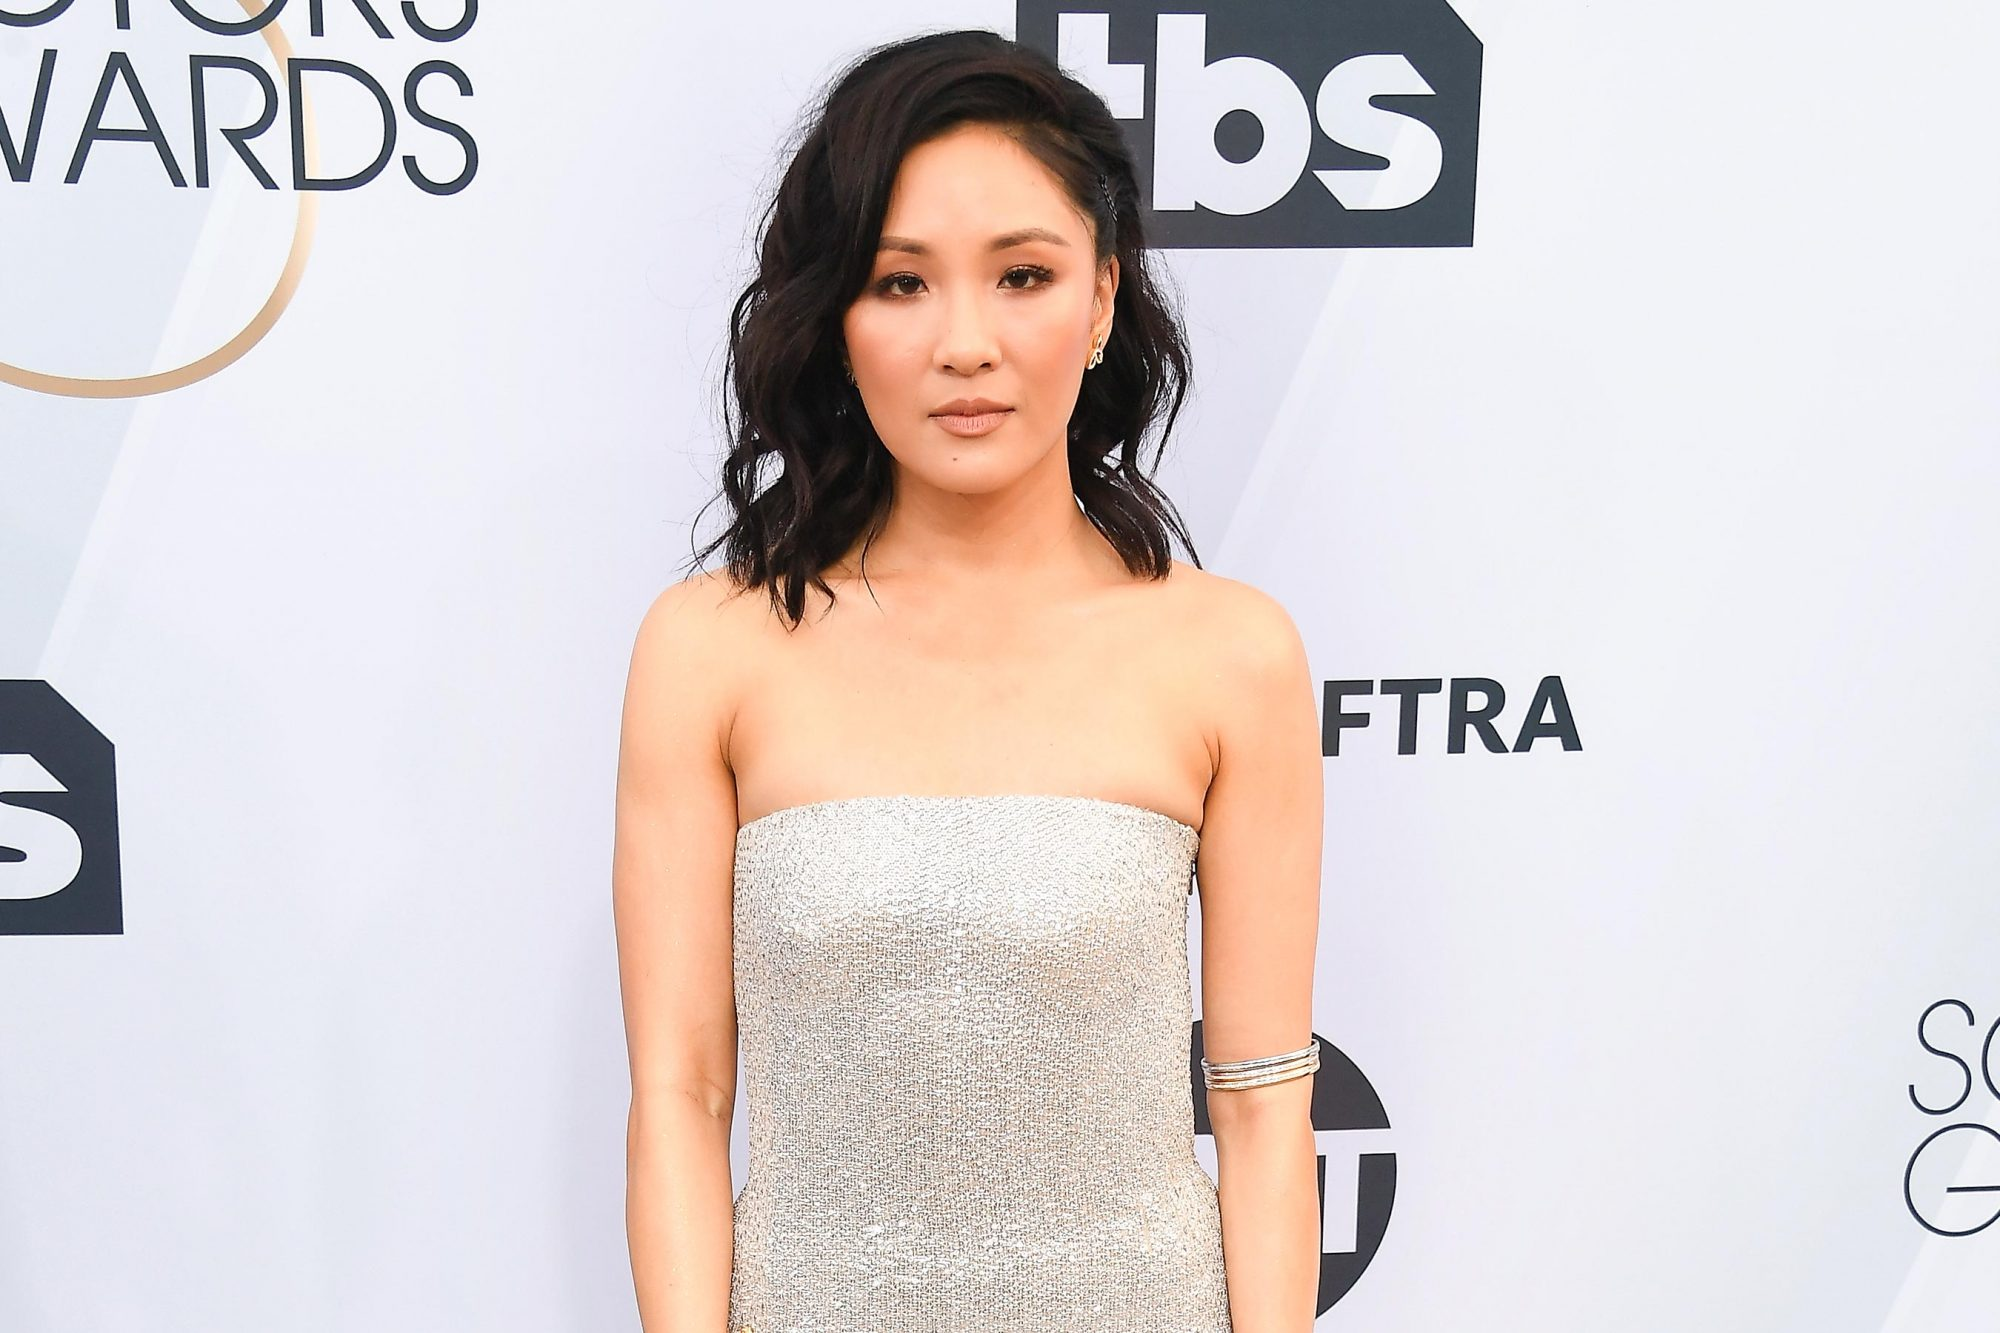 LOS ANGELES, CA - JANUARY 27: Constance Wu attends the 25th Annual Screen ActorsGuild Awards at The Shrine Auditorium on January 27, 2019 in Los Angeles, California. (Photo by Steve Granitz/WireImage)